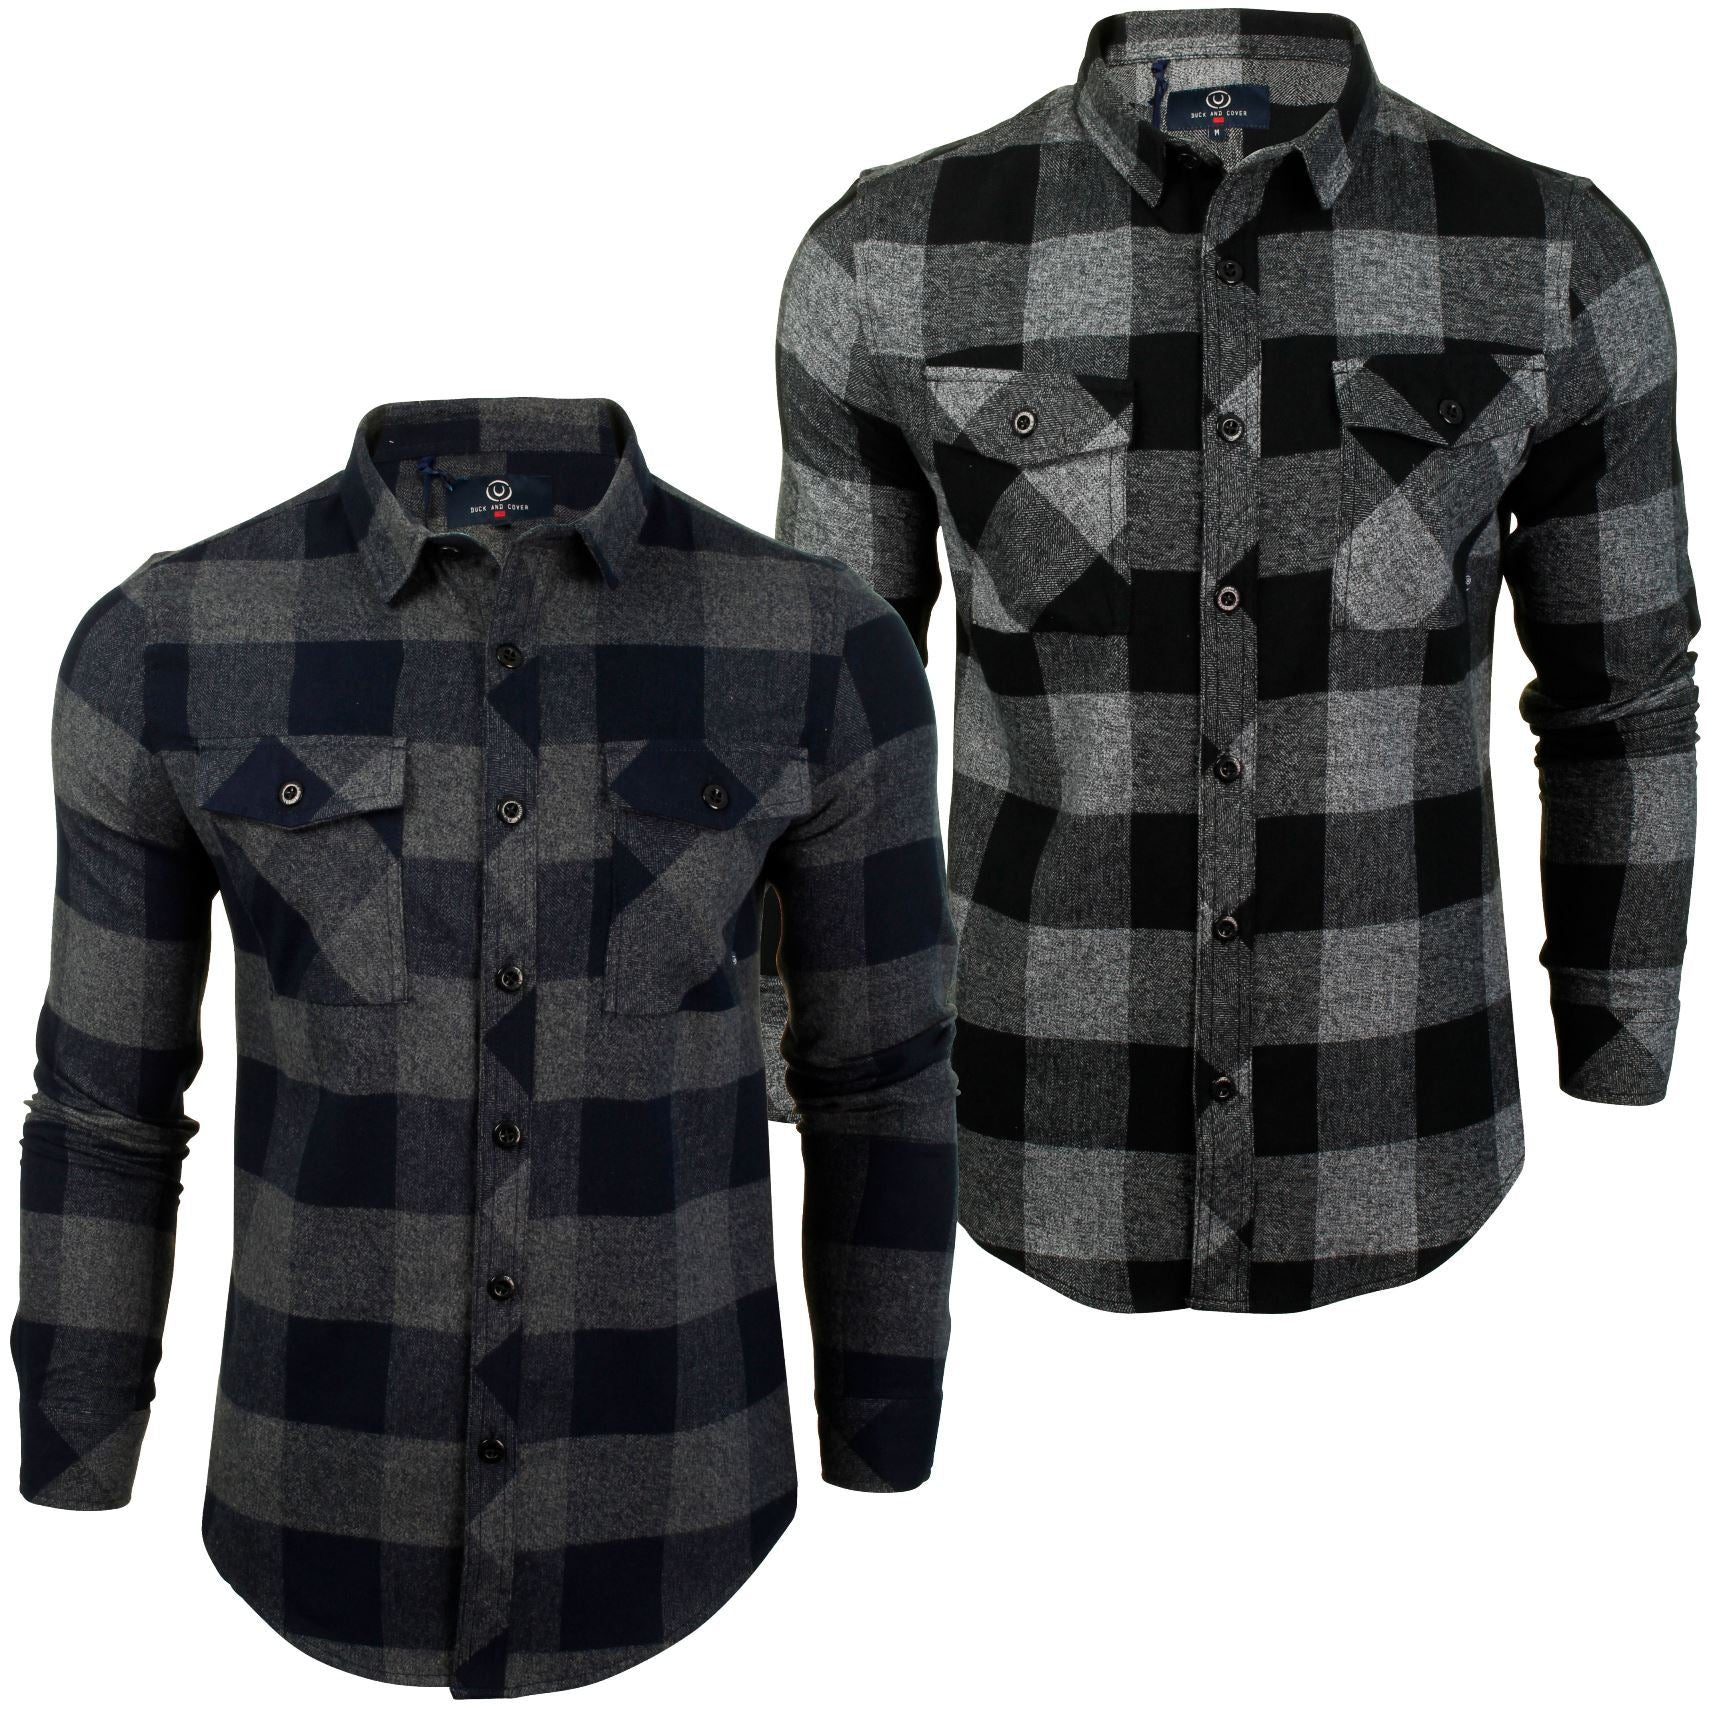 Mens Flannel Check Shirt by Duck and Cover 'Chapman'-Main Image